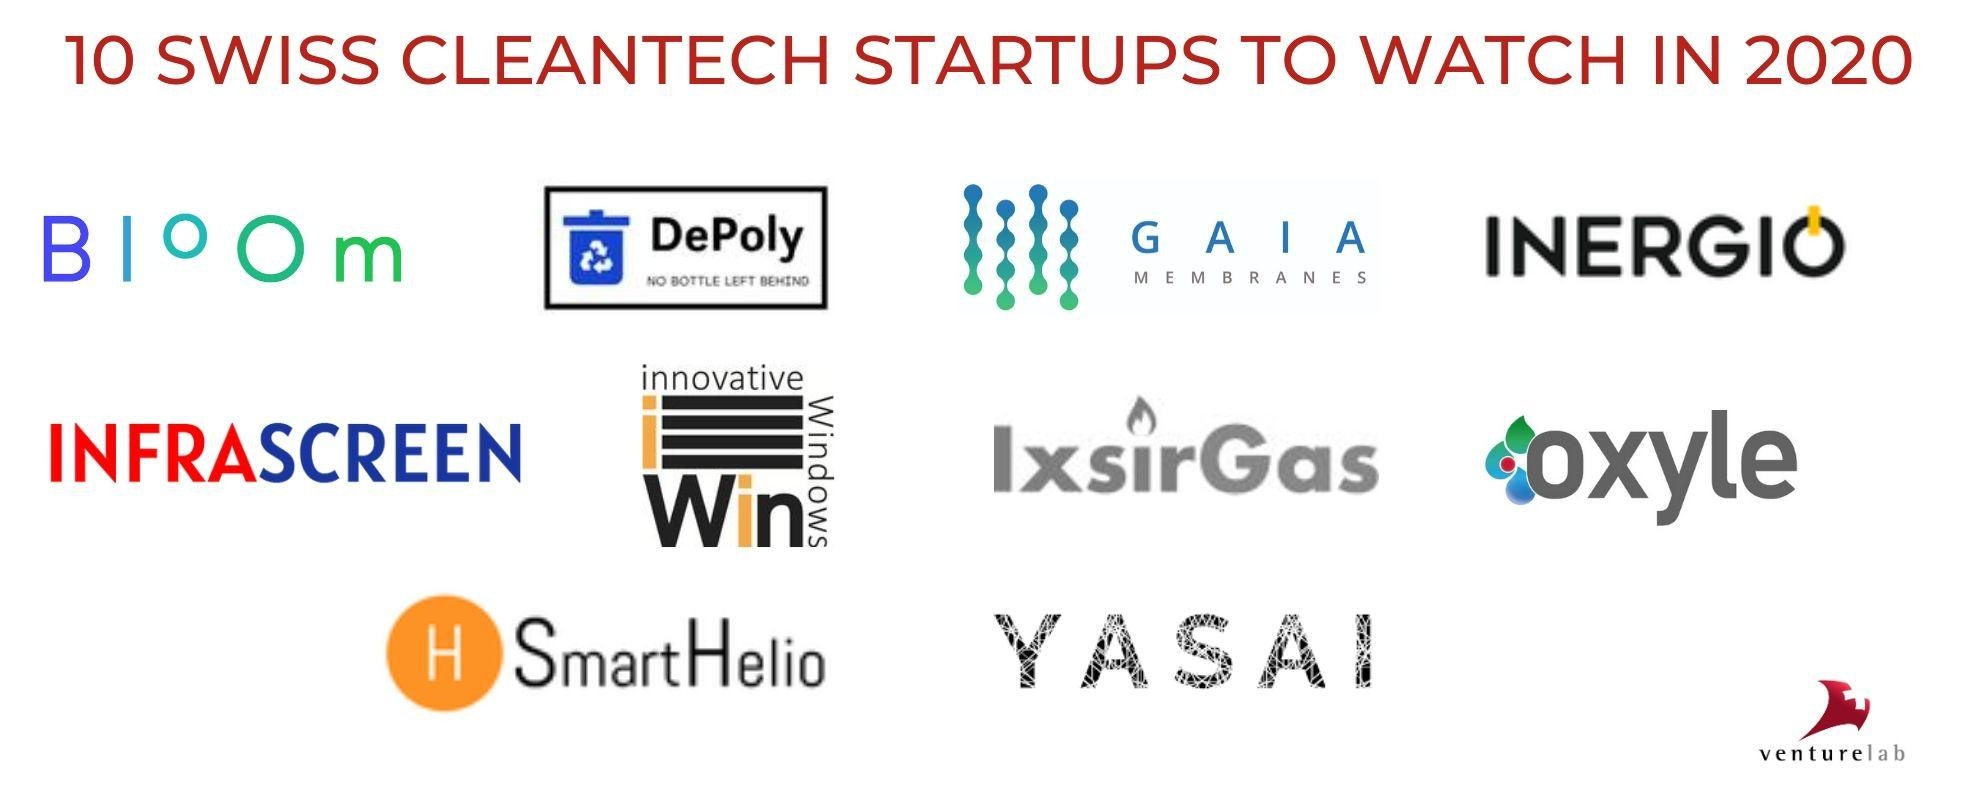 10 promising Swiss cleantech startups to watch in 2020